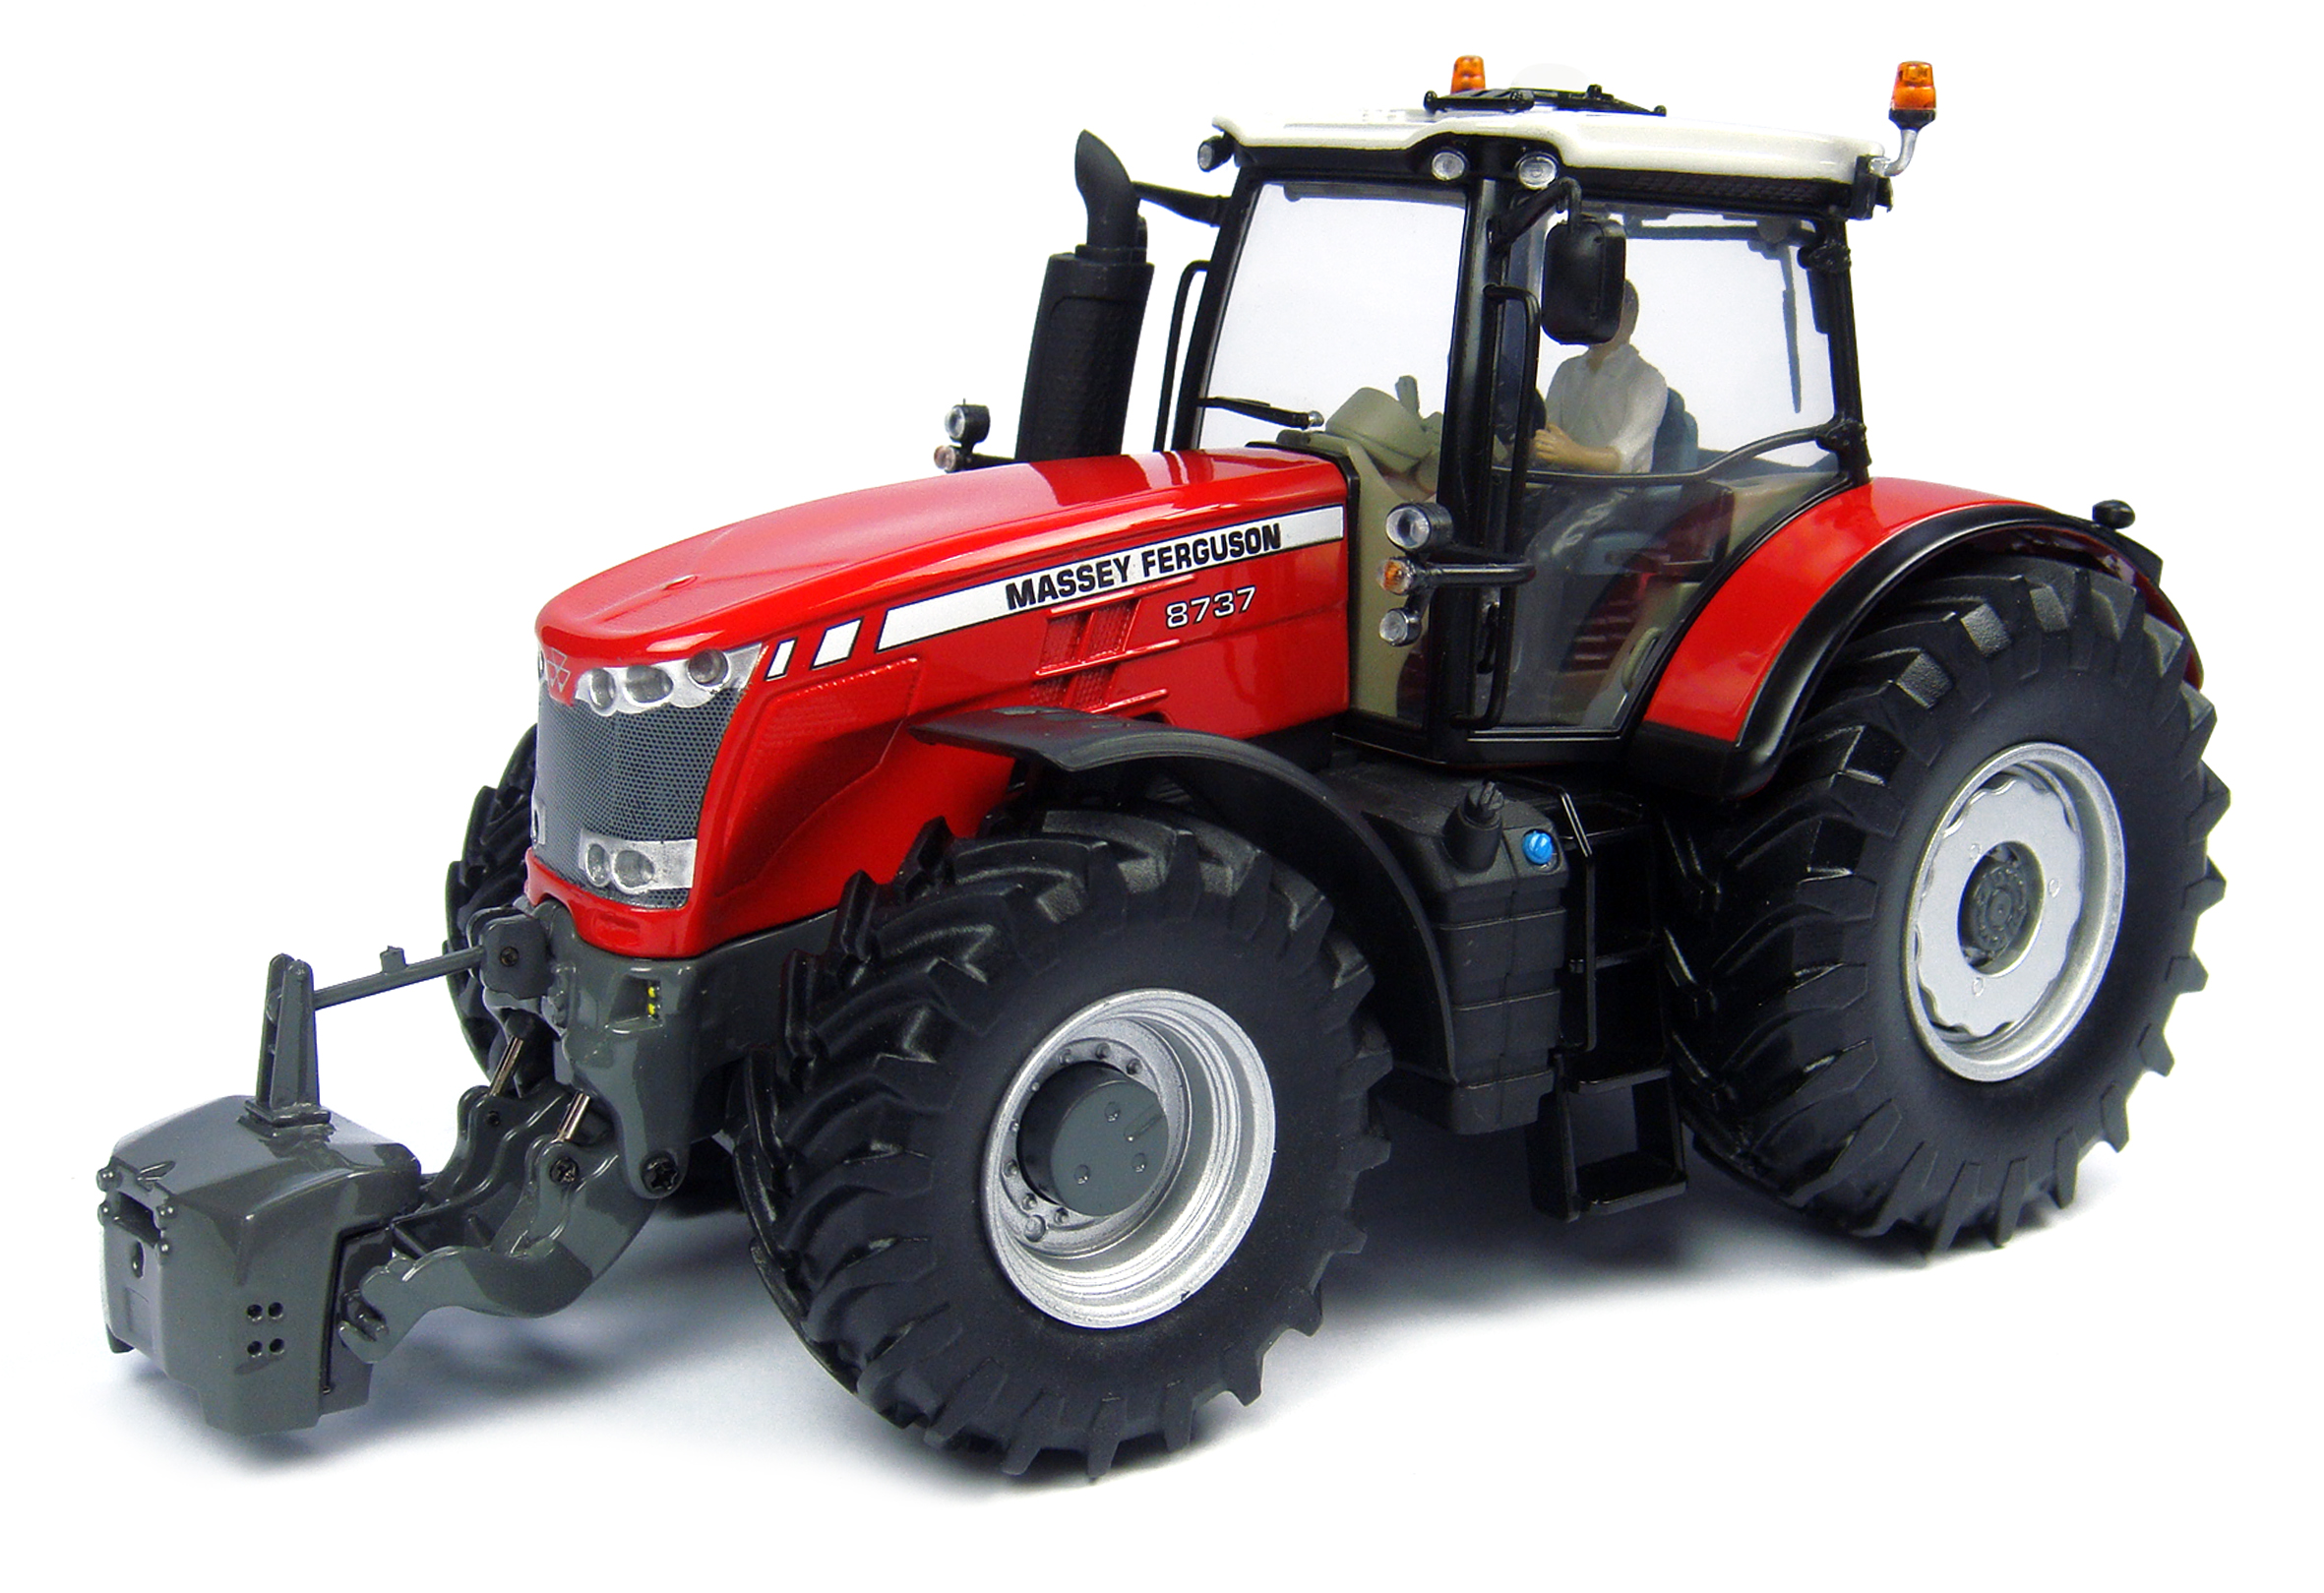 Massey Ferguson 8737 USA + Driver Limited Edition